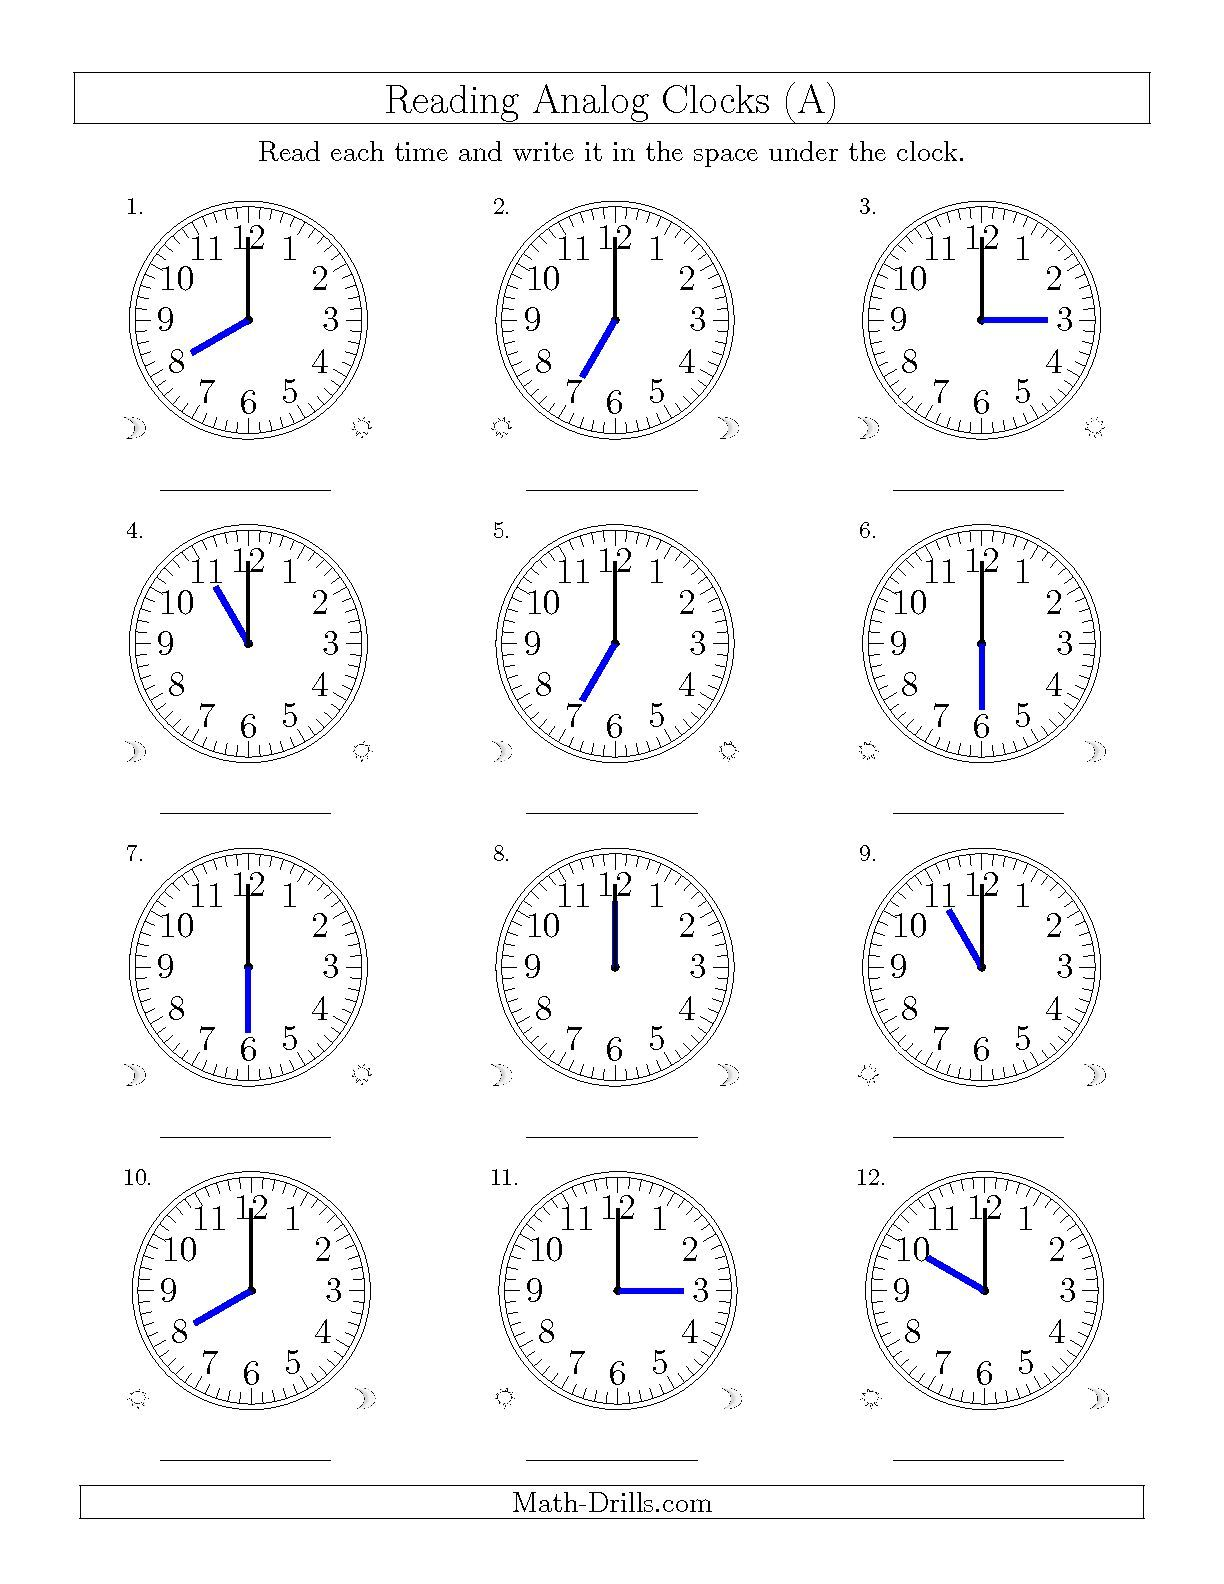 worksheet Analogue Time Worksheet the reading time on 12 hour analog clocks in one intervals a 5 minute worksheet